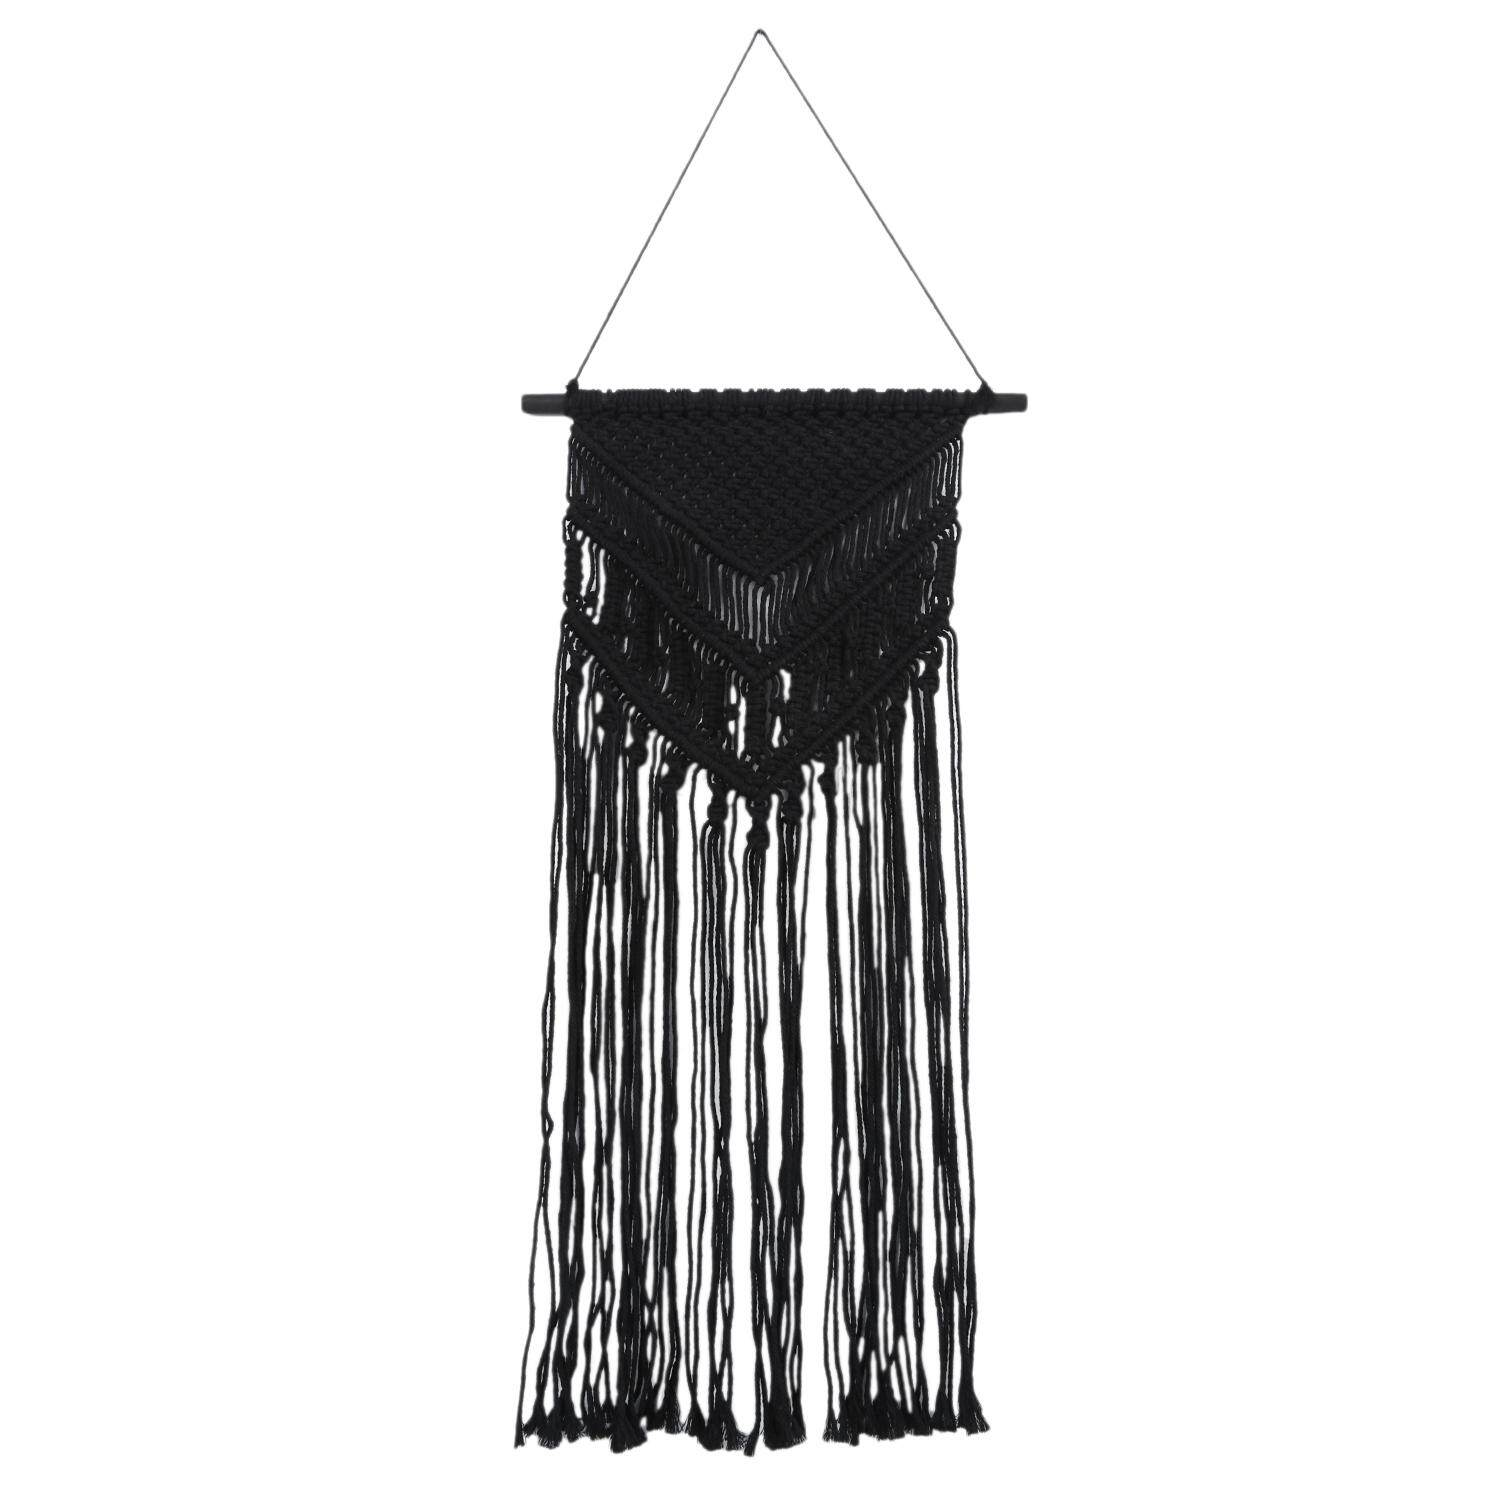 Macrame Wall Hanging Woven Tapestry Minimalist Home Decor, Black,35cmx95cm Free Shipping